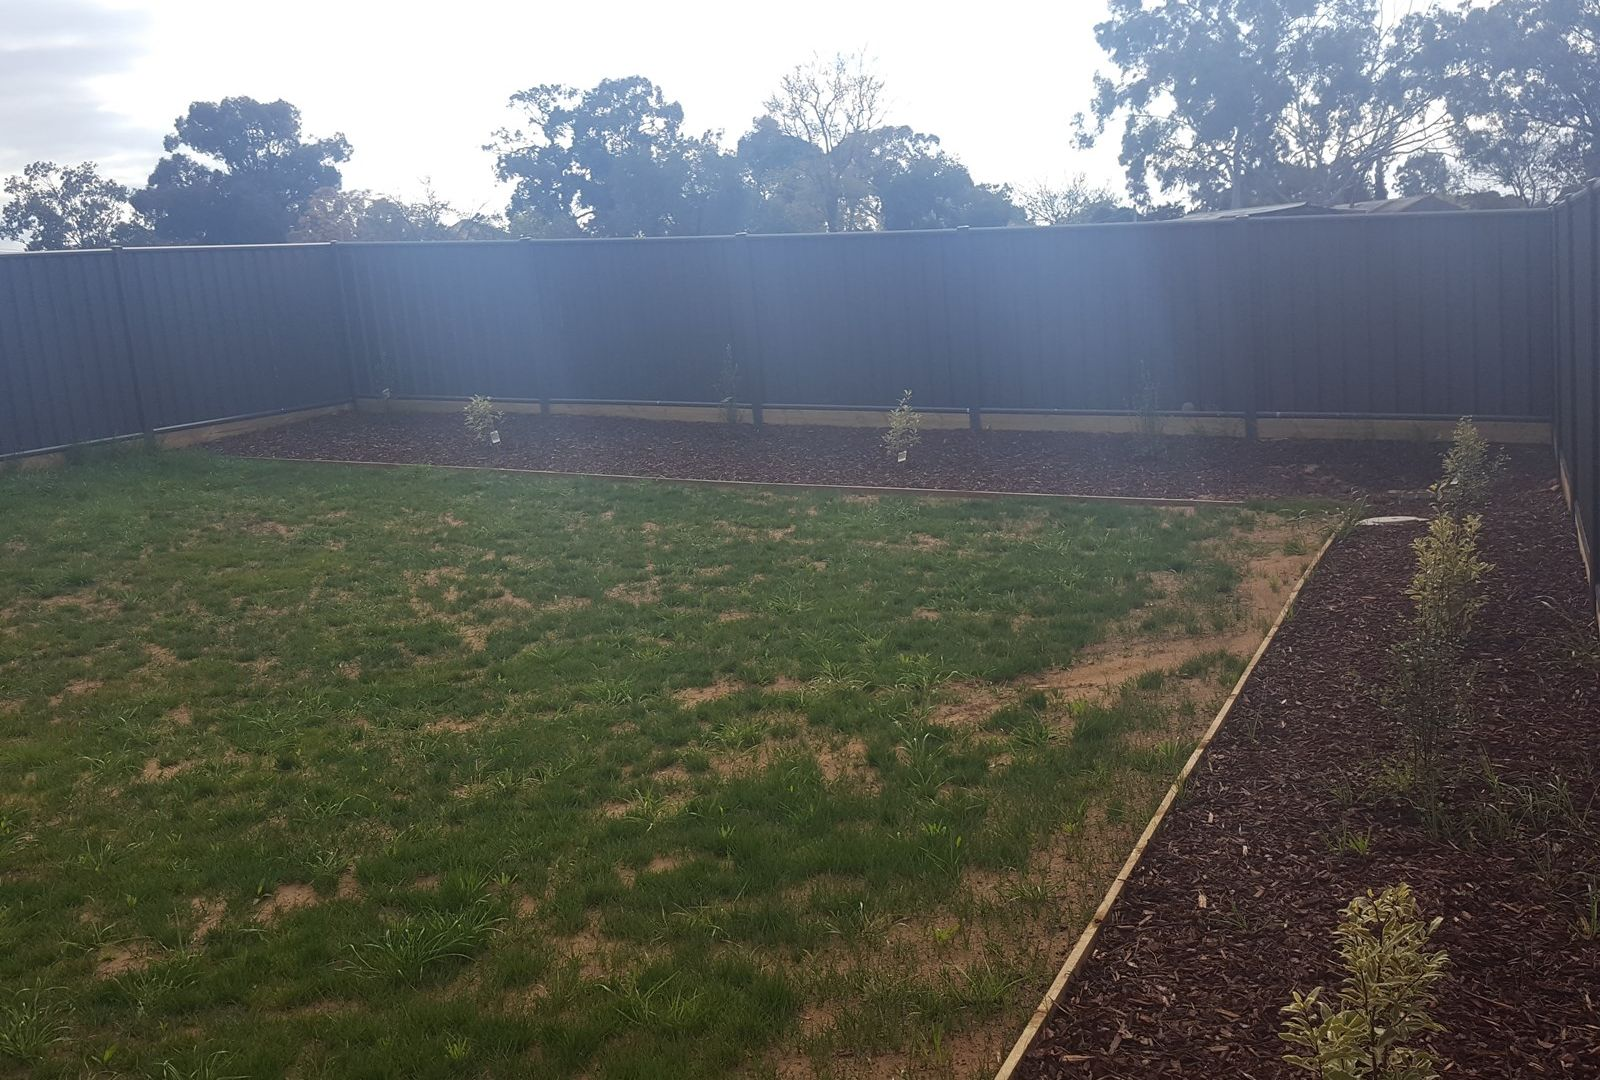 Lot 7/60 Chapple Street, California Gully VIC 3556, Image 6